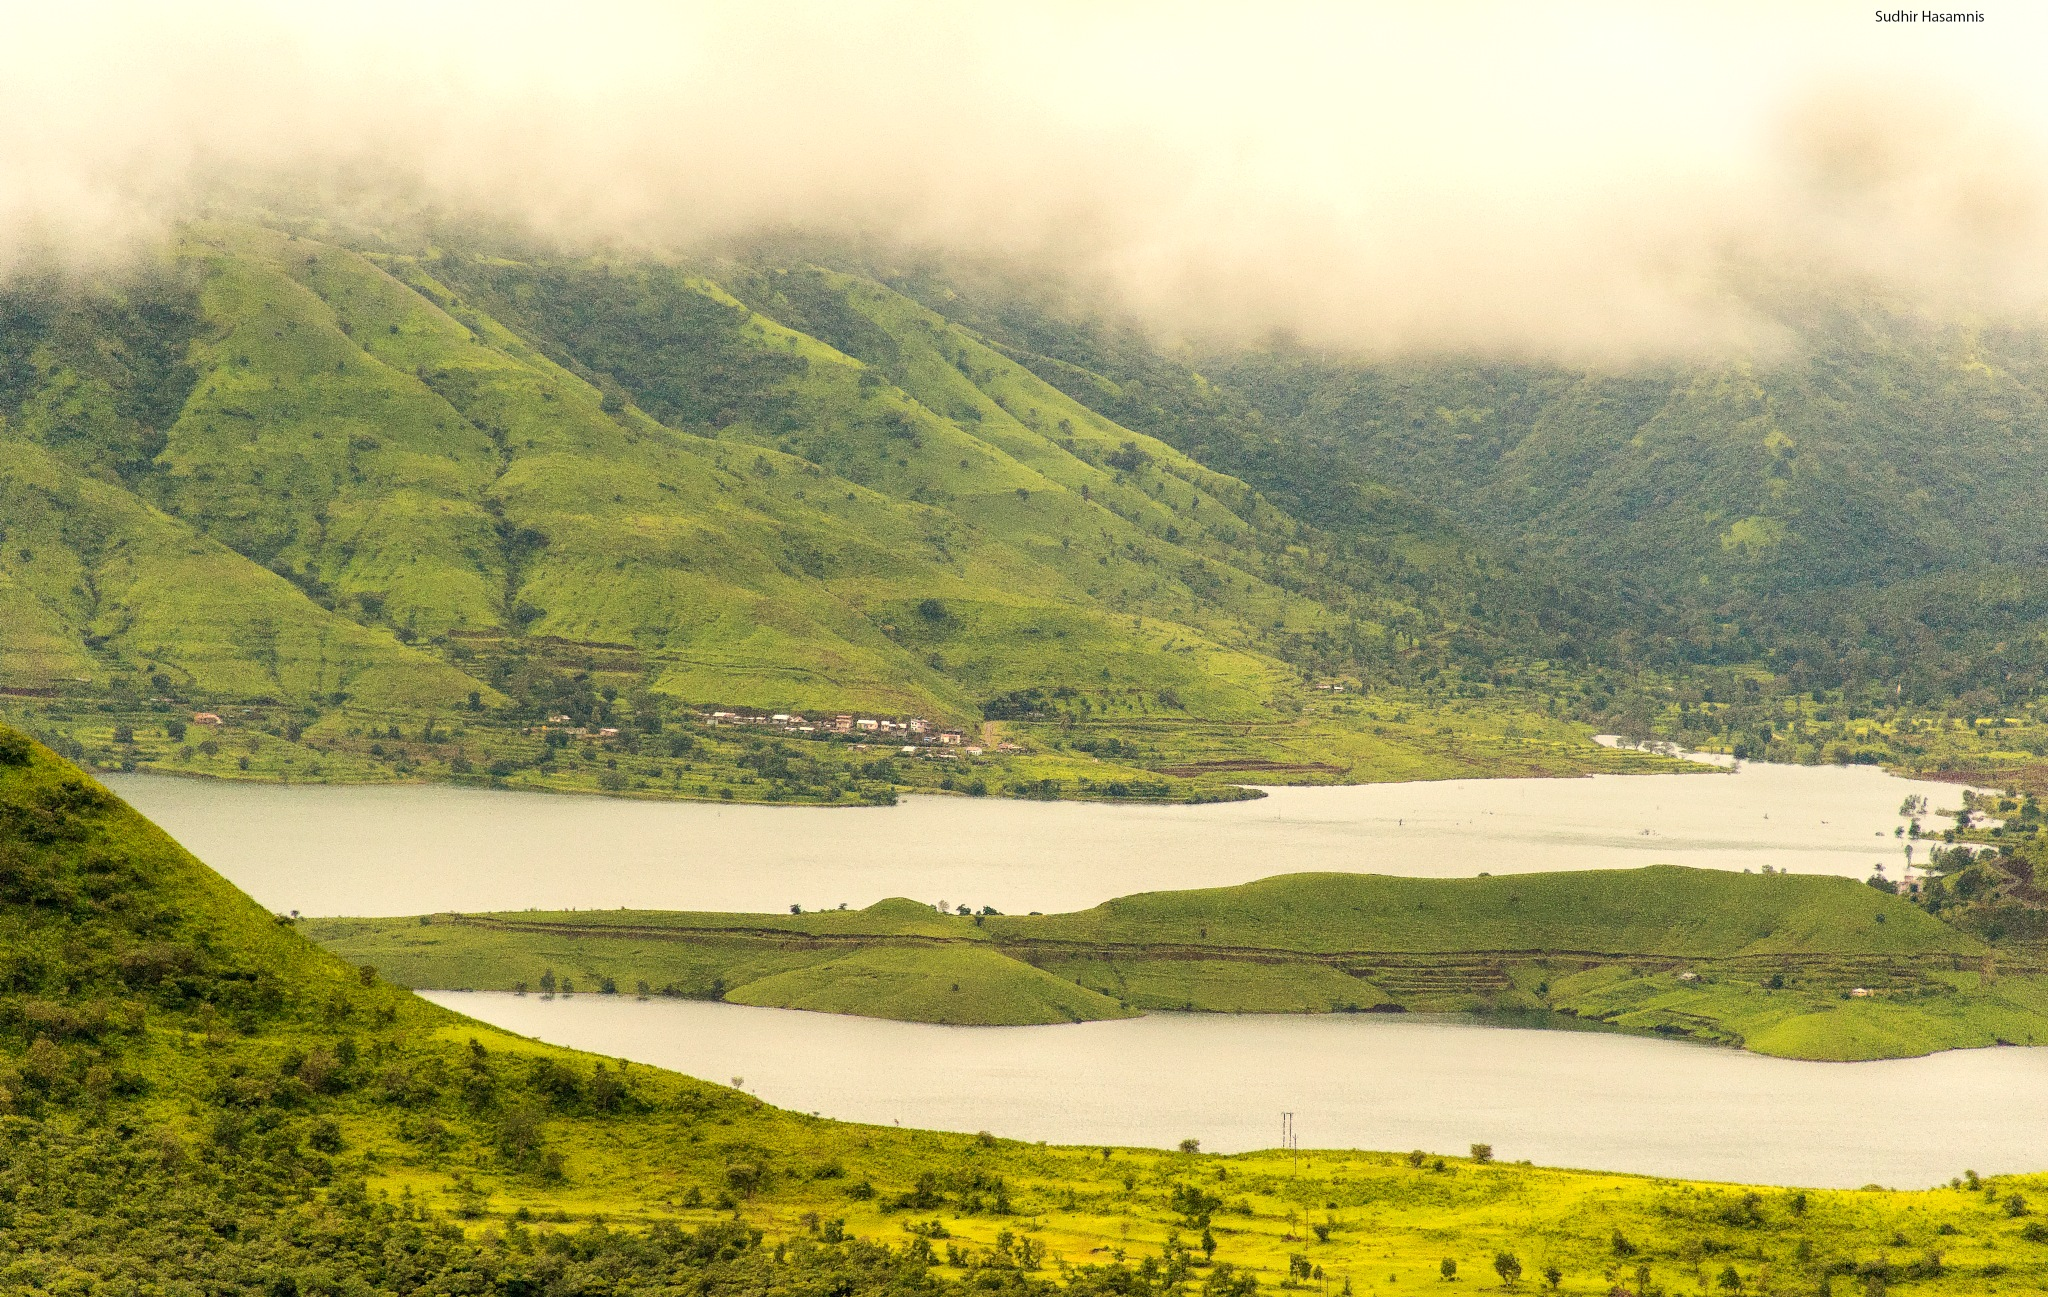 Twin Lakes on Foggy morning by DrSudhir Hasamnis